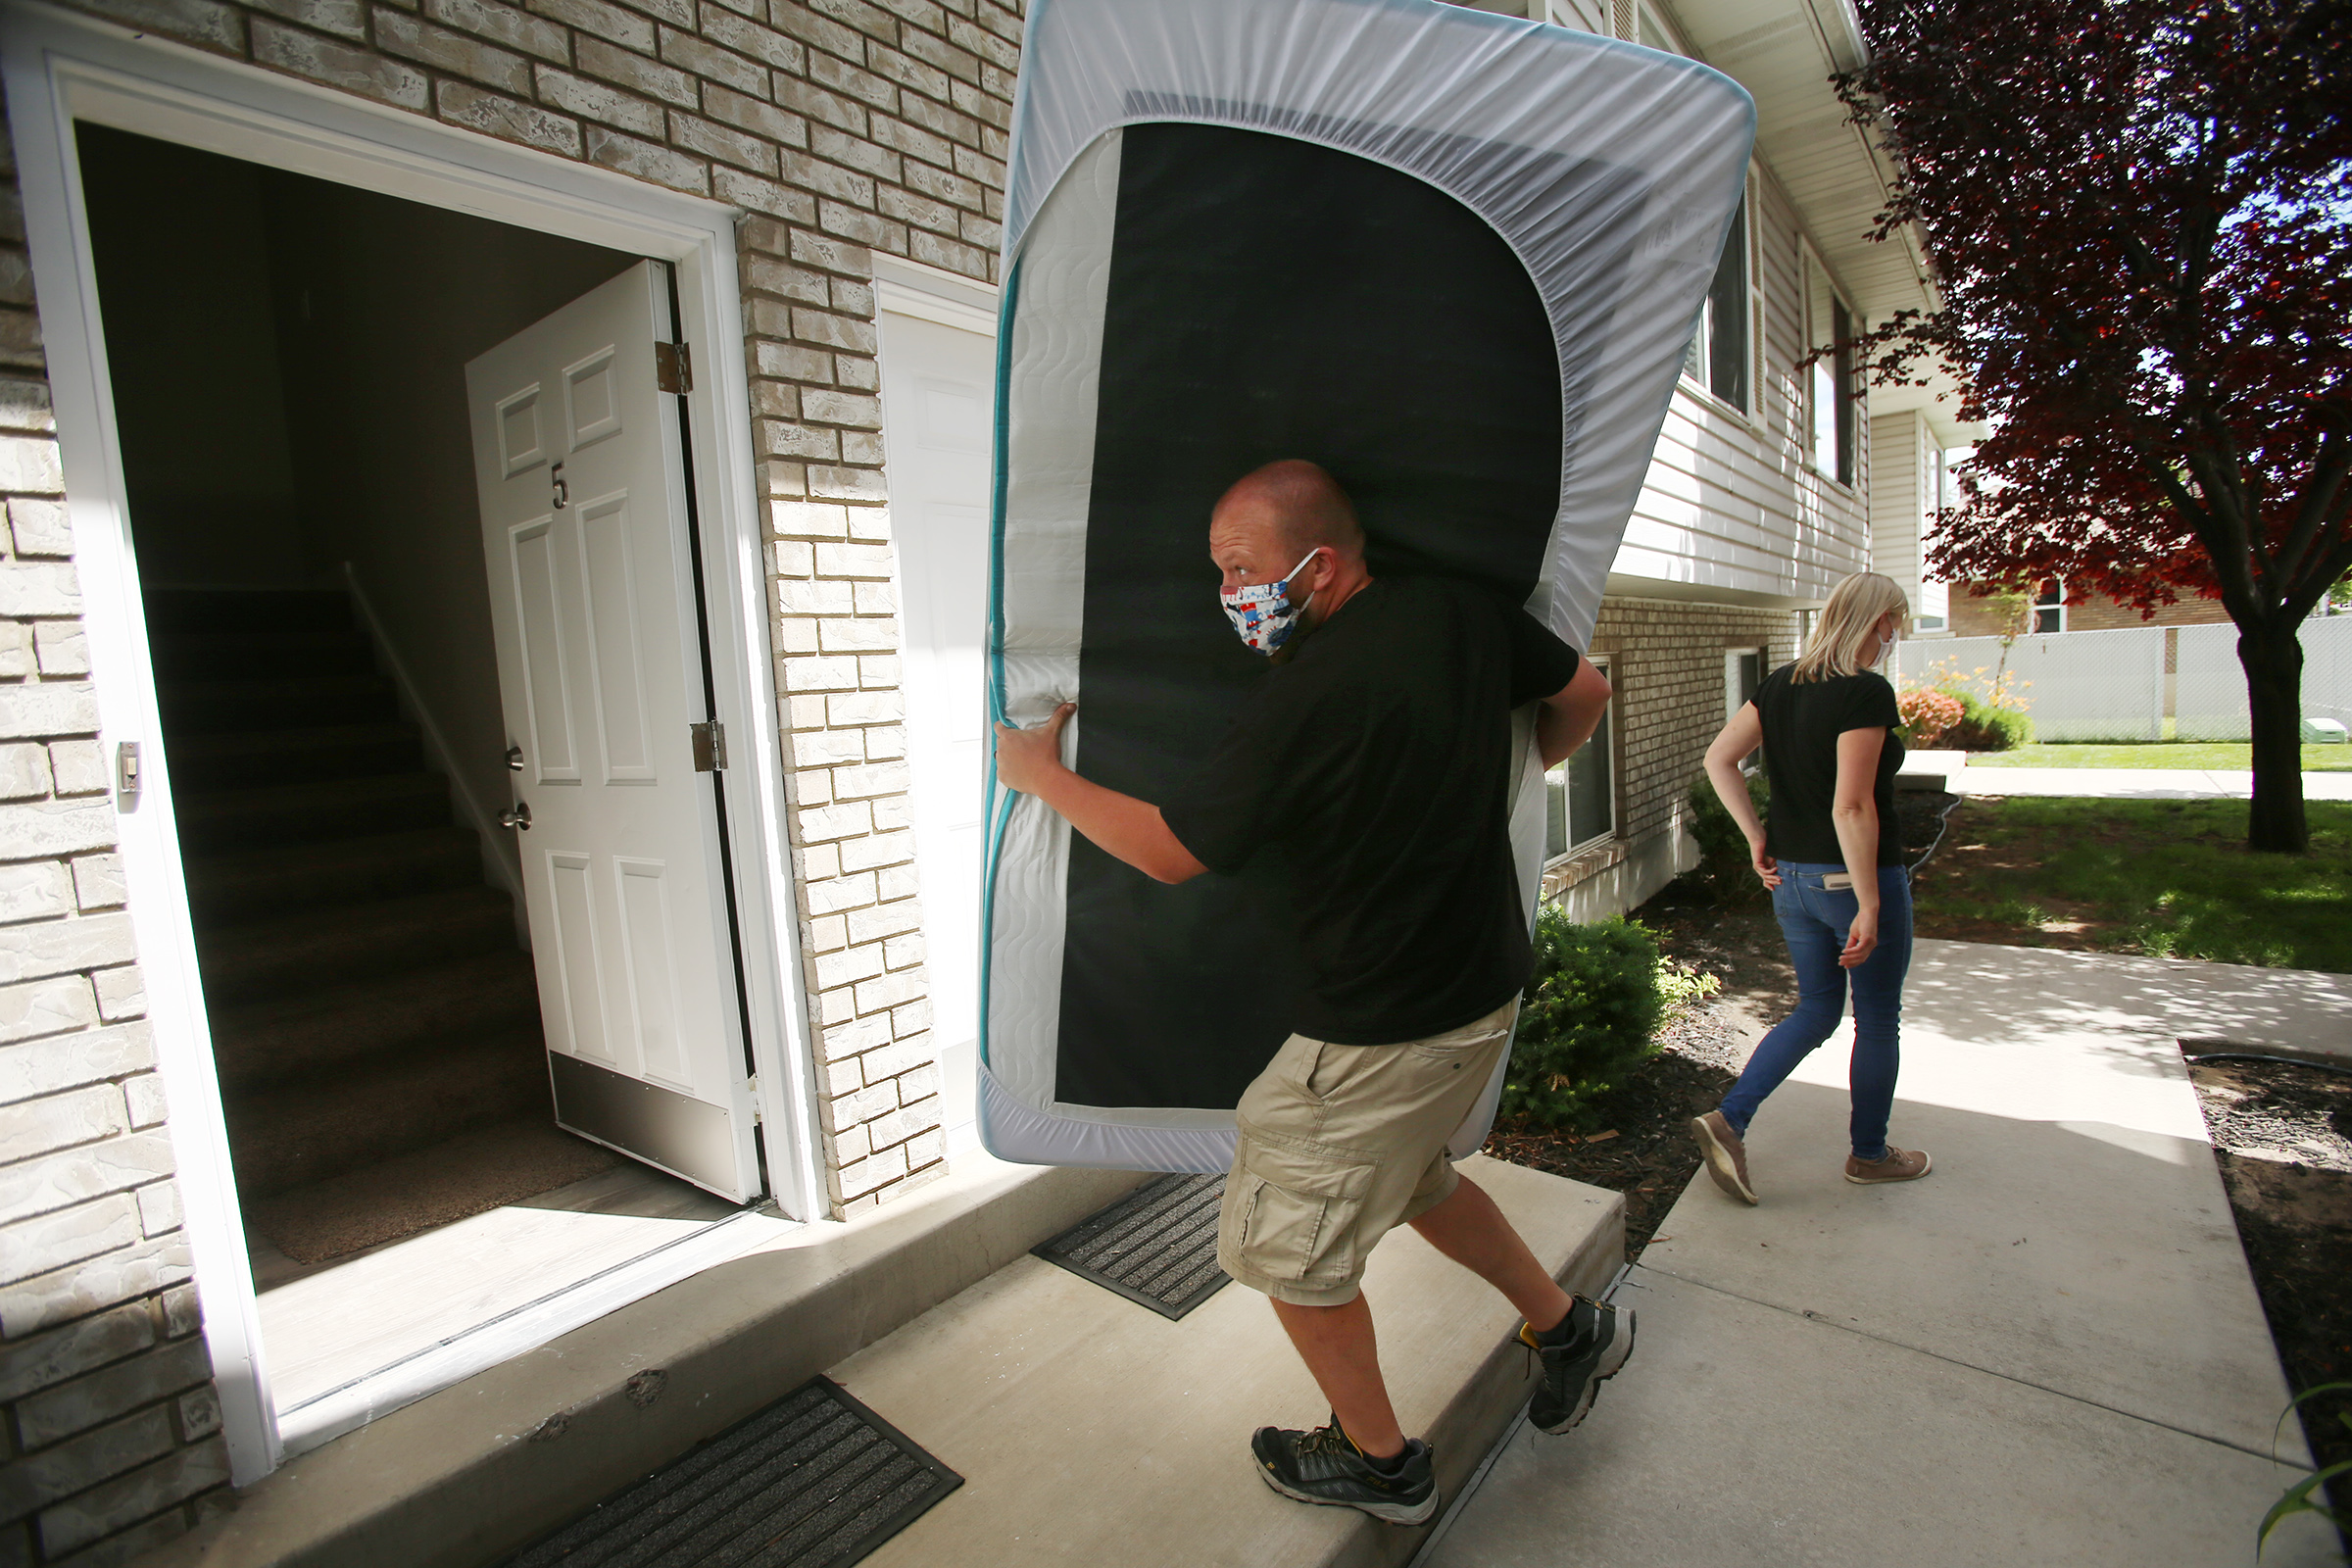 Matthew Tiemann carries a mattress into his condo in Provo as he and his wife, Courtney, unload their belongings on Tuesday, June 30, 2020. The couple had planned to go on a cruise and then COVID-19 happened and their plans changed.